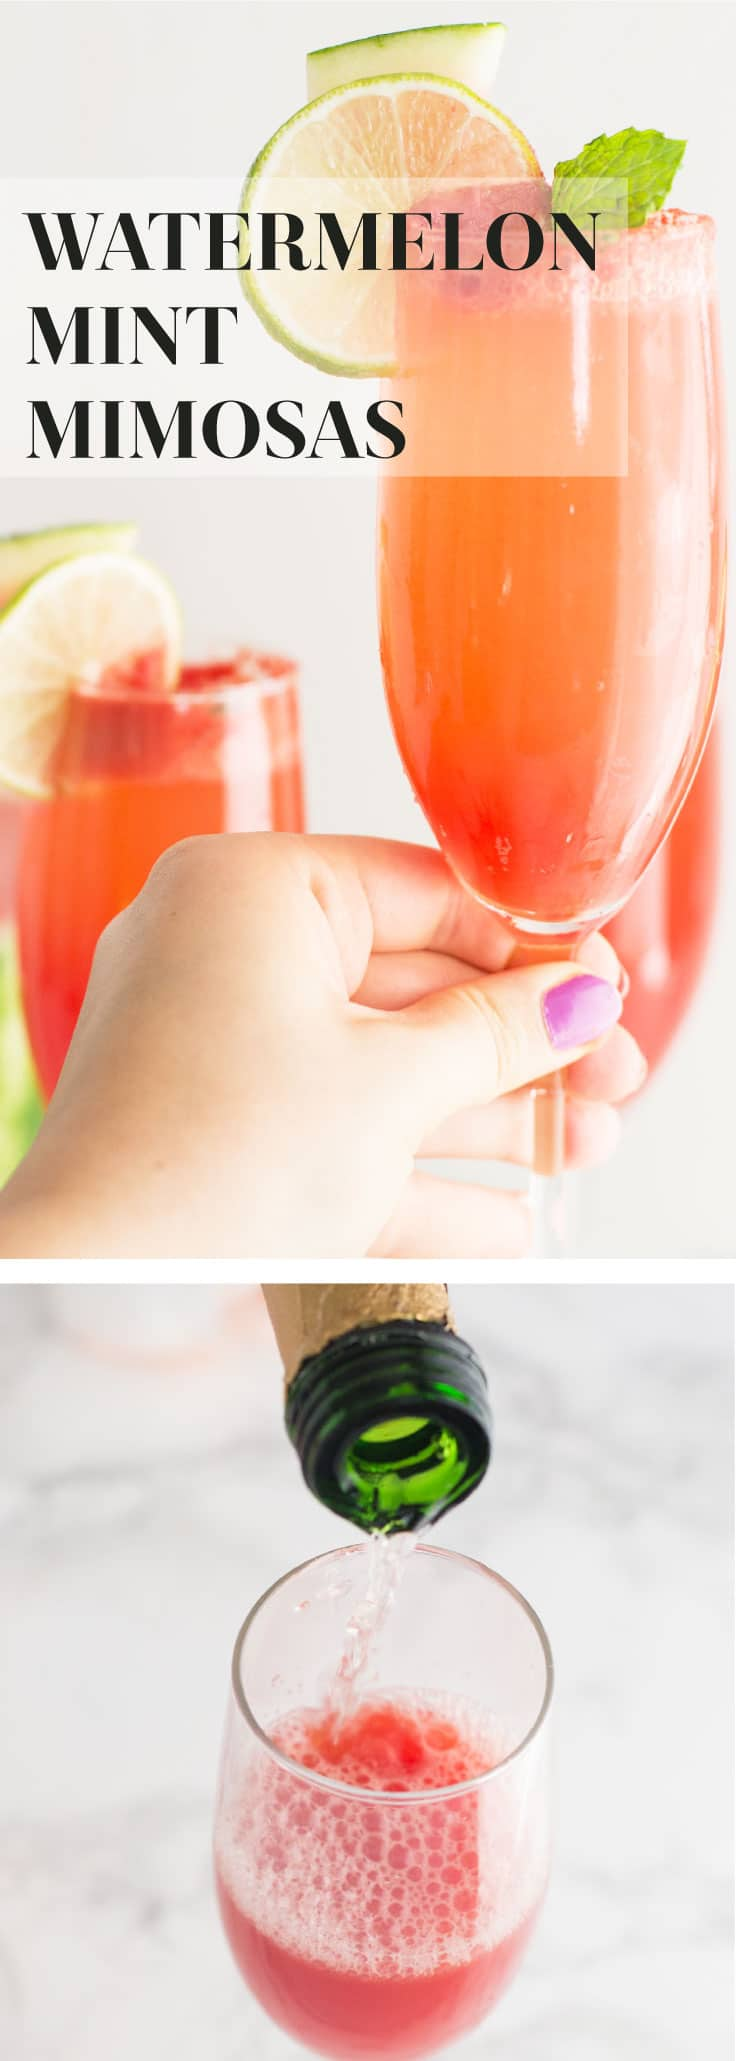 Watermelon Mint Mimosas -- This delicious watermelon mint mimosa recipe only calls for a few ingredients and is so easy to make. NATURALLY sweetened + simple ingredients make this cocktail a must try! Perfect for Sunday brunch or entertaining guests on any occasion.#healthy #cocktail #champagne #summer #drink - mindfulavocado